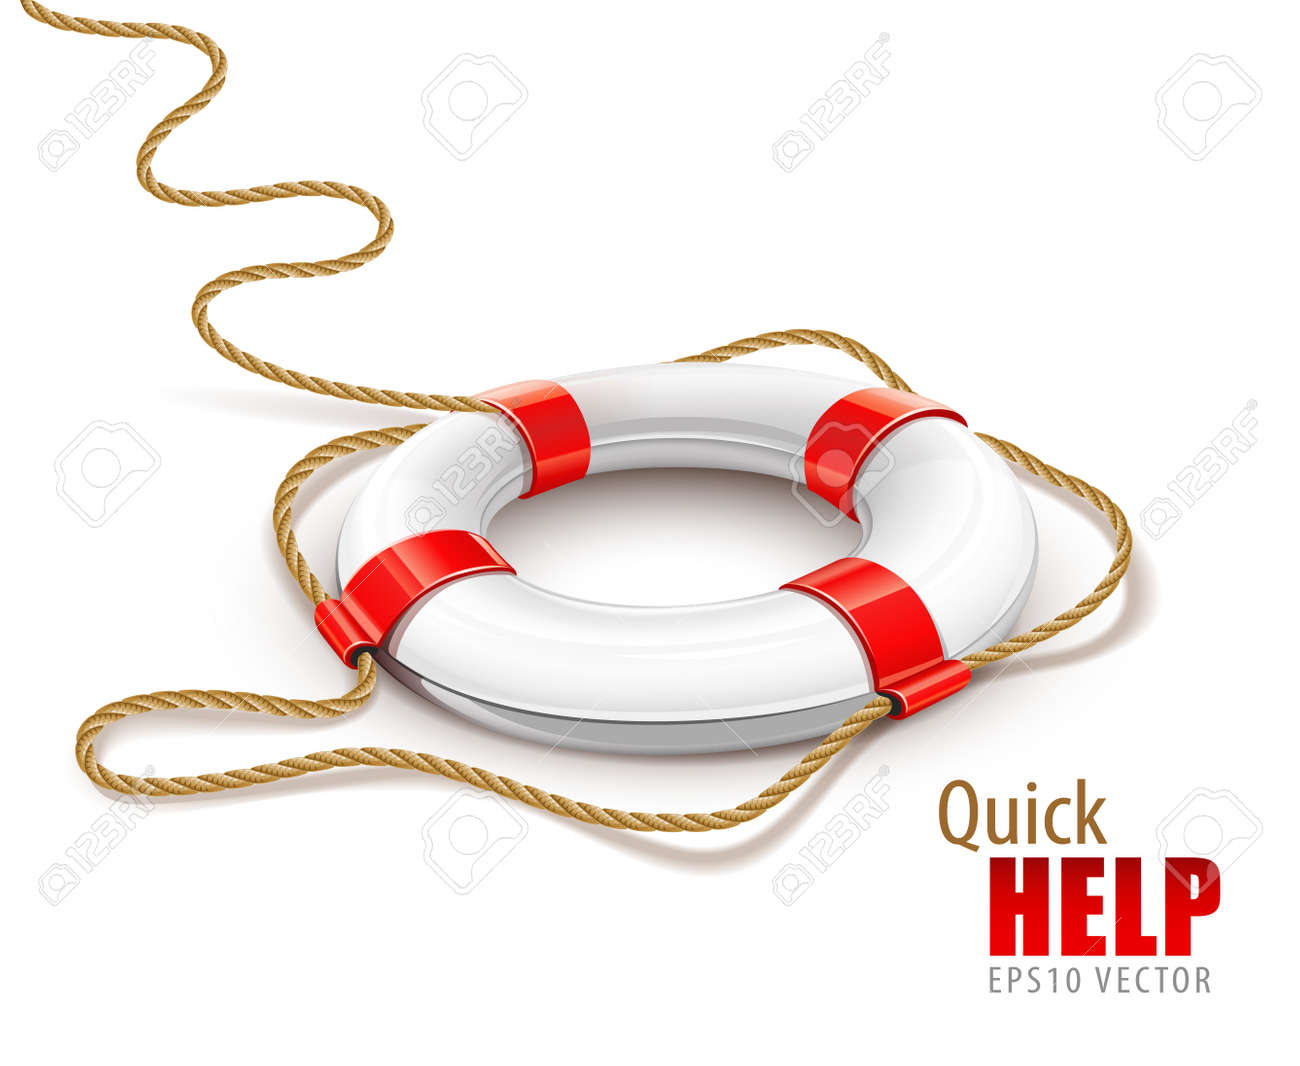 rescue ring for quick help isolated on white background. Stock Vector - 12101033